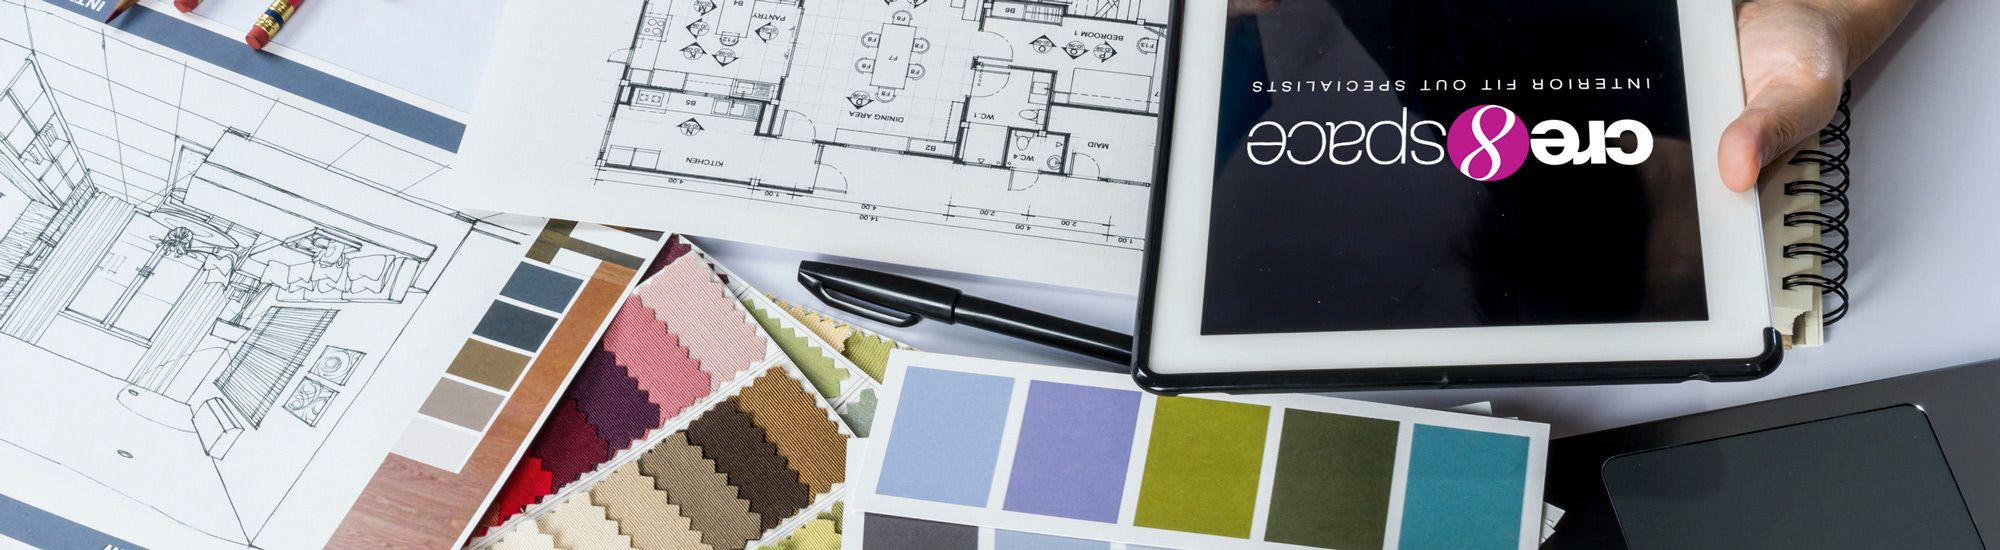 Office designer using tablet and blueprints for interior design